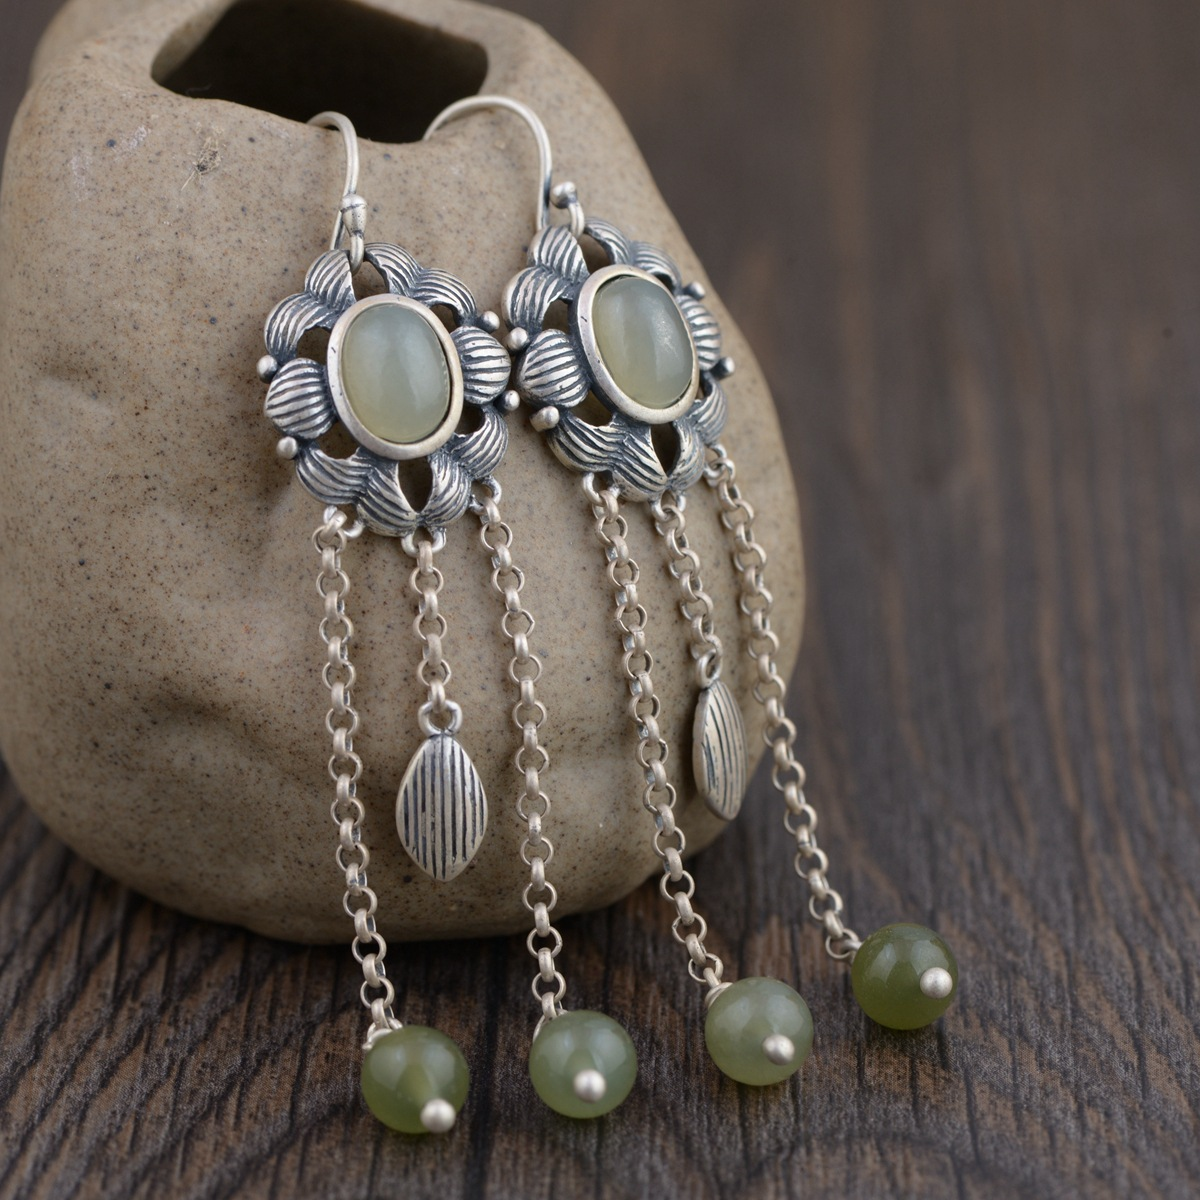 wind female first act the role ofing is tasted Blooming flowers with hetian  tassels eardrop Retro earrings wind female first act the role ofing is tasted Blooming flowers with hetian  tassels eardrop Retro earrings